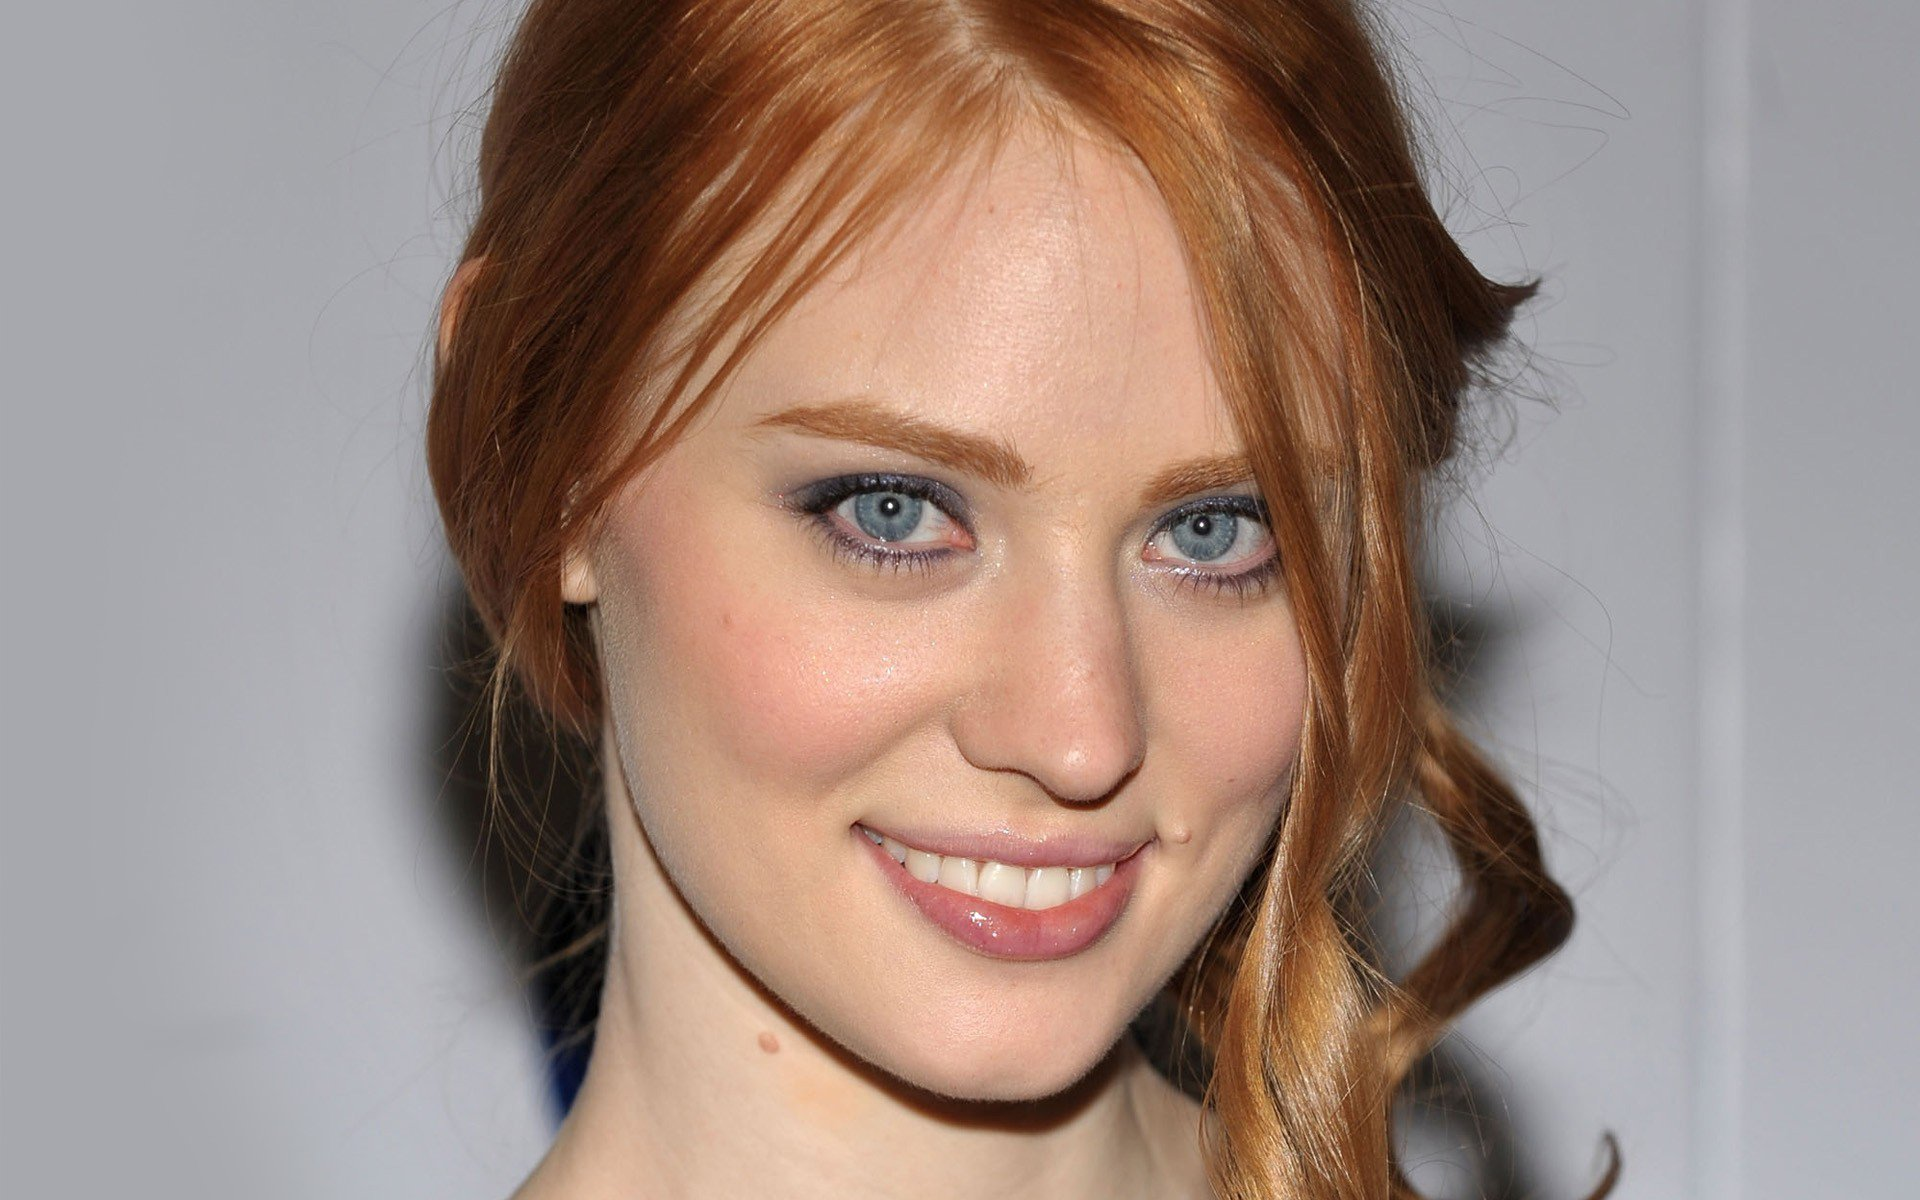 Deborah Ann Woll earned a  million dollar salary, leaving the net worth at 2 million in 2017